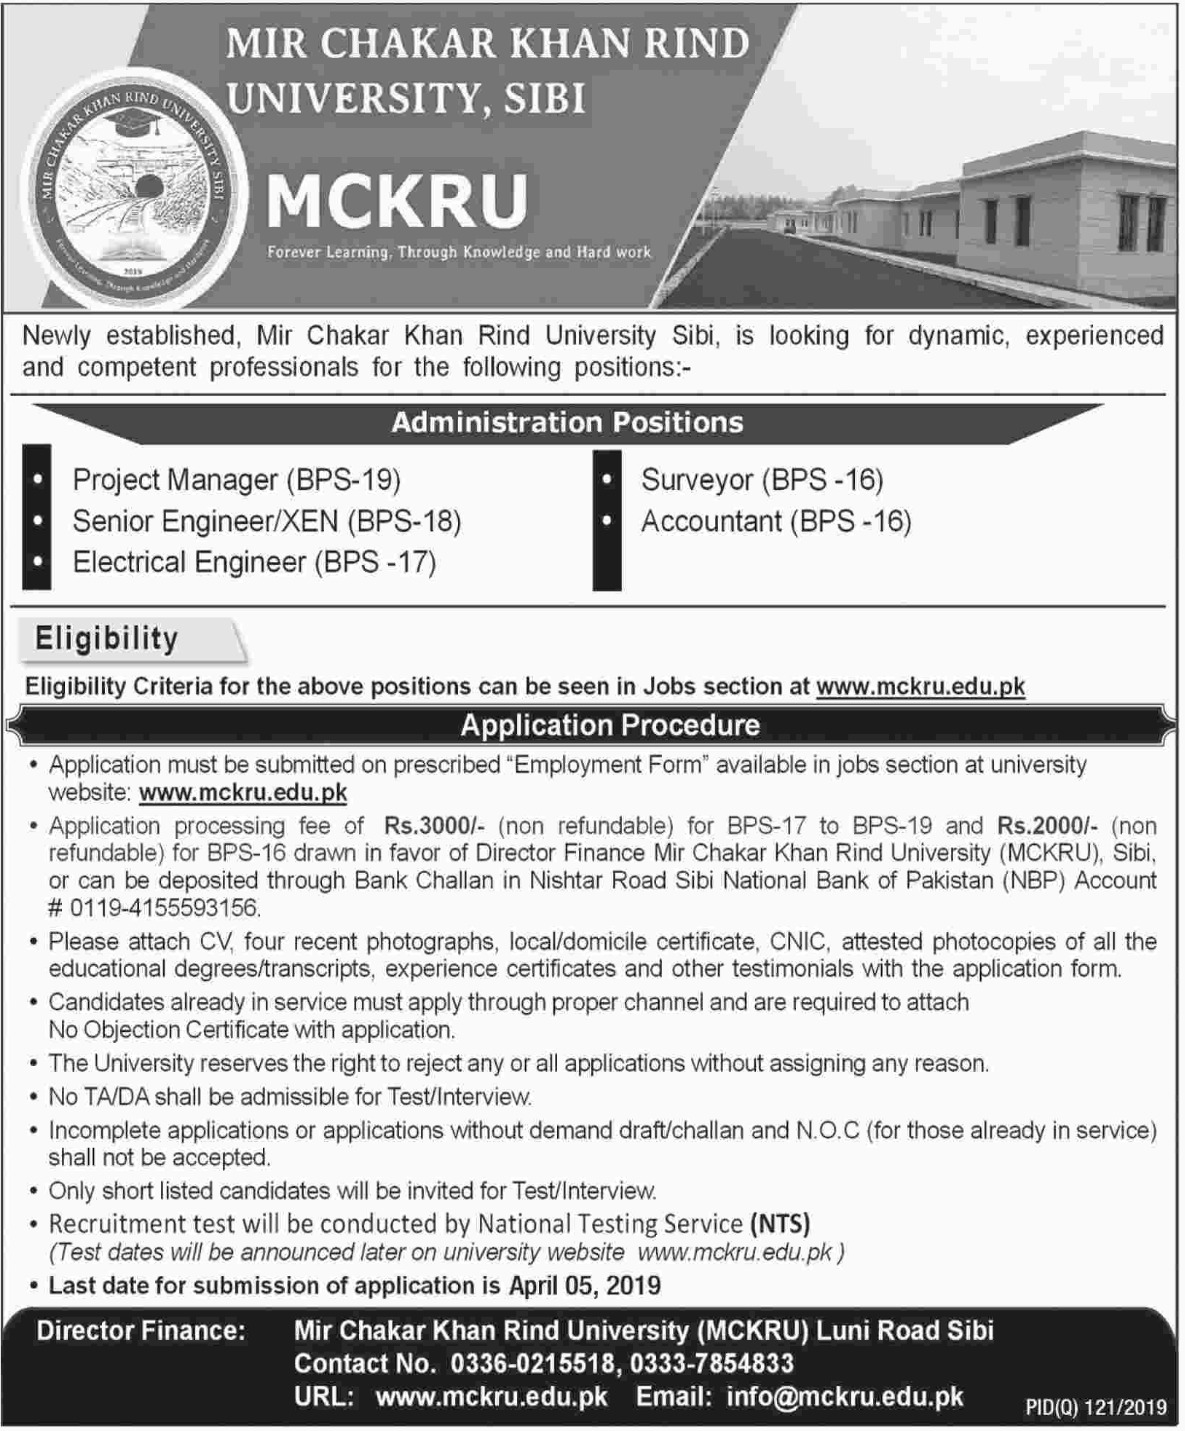 Mir Chakar Khan Rind University MCKRU Sibi Jobs NTS Test Answer Keys Result